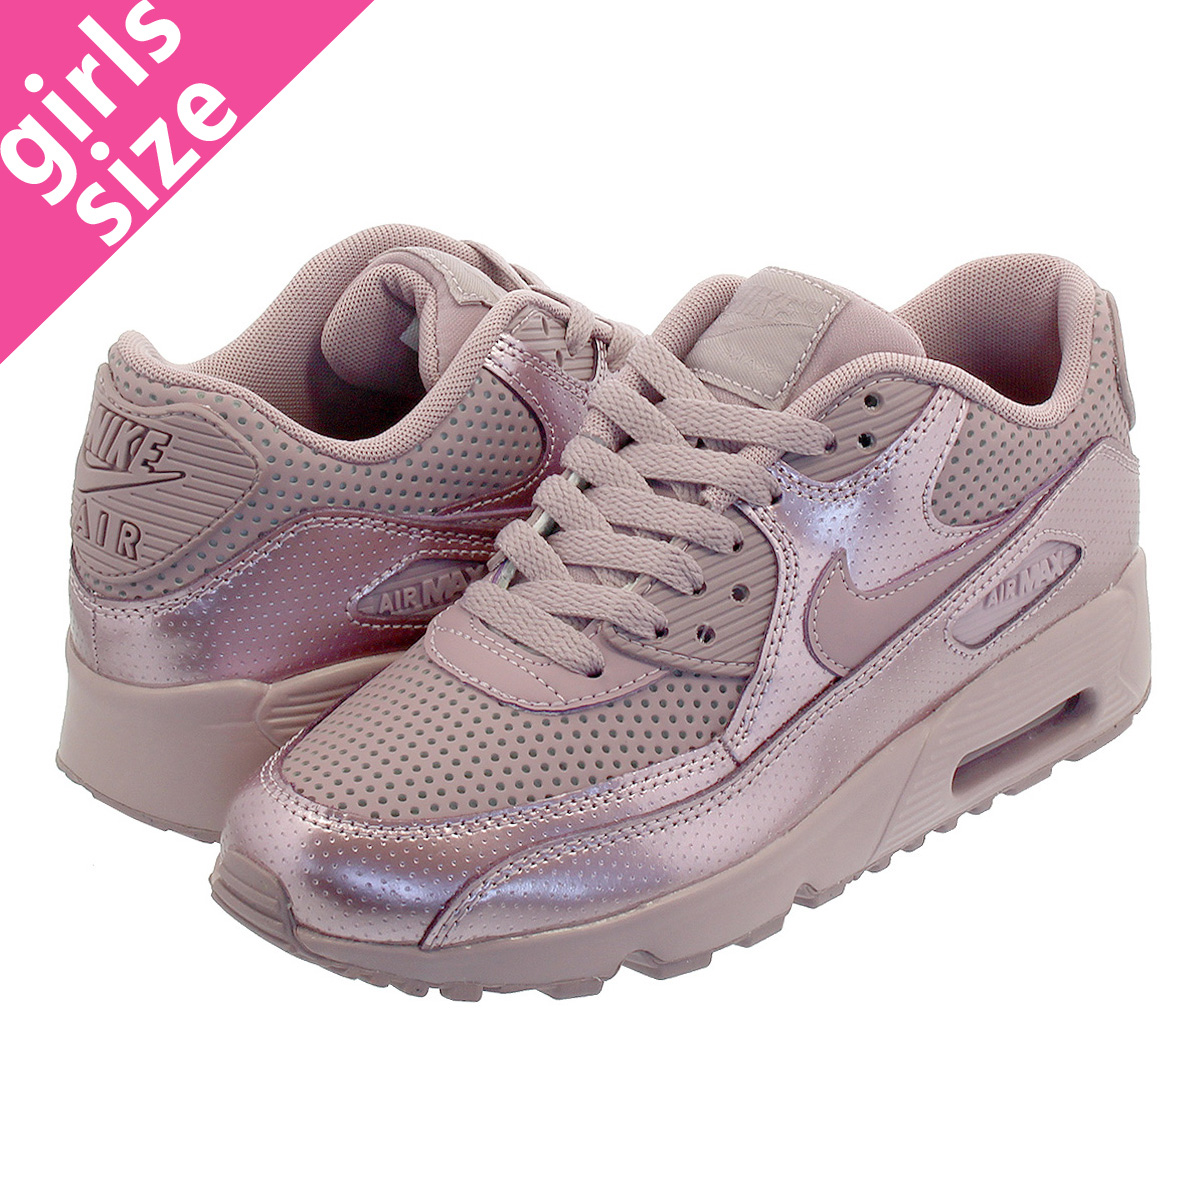 meilleures baskets 89472 72250 NIKE AIR MAX 90 SE LTR GS ELEMENTAL ROSE Kie Ney AMAX 90 SE leather GS  ELEMENTAL ROSE 859,633-600